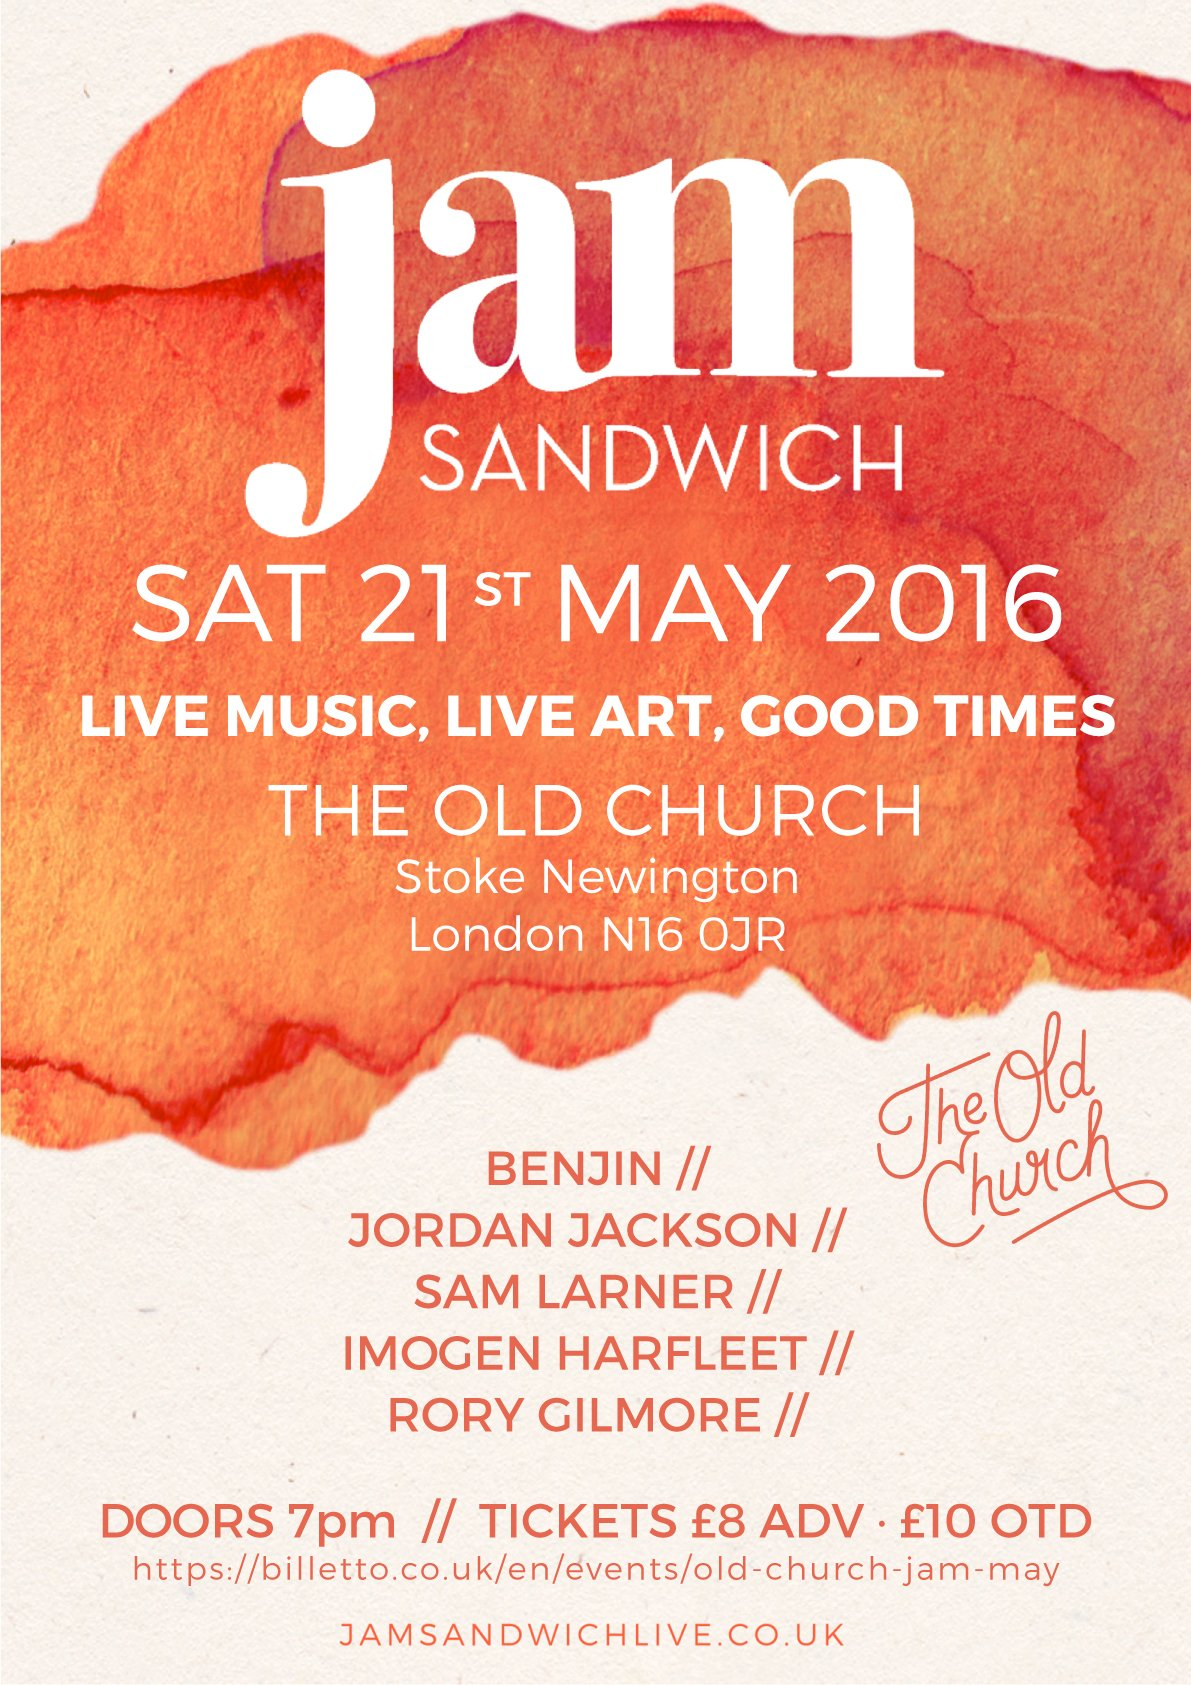 Jam-Sandwich-poster-OLD-CHURCH-MAy-2016